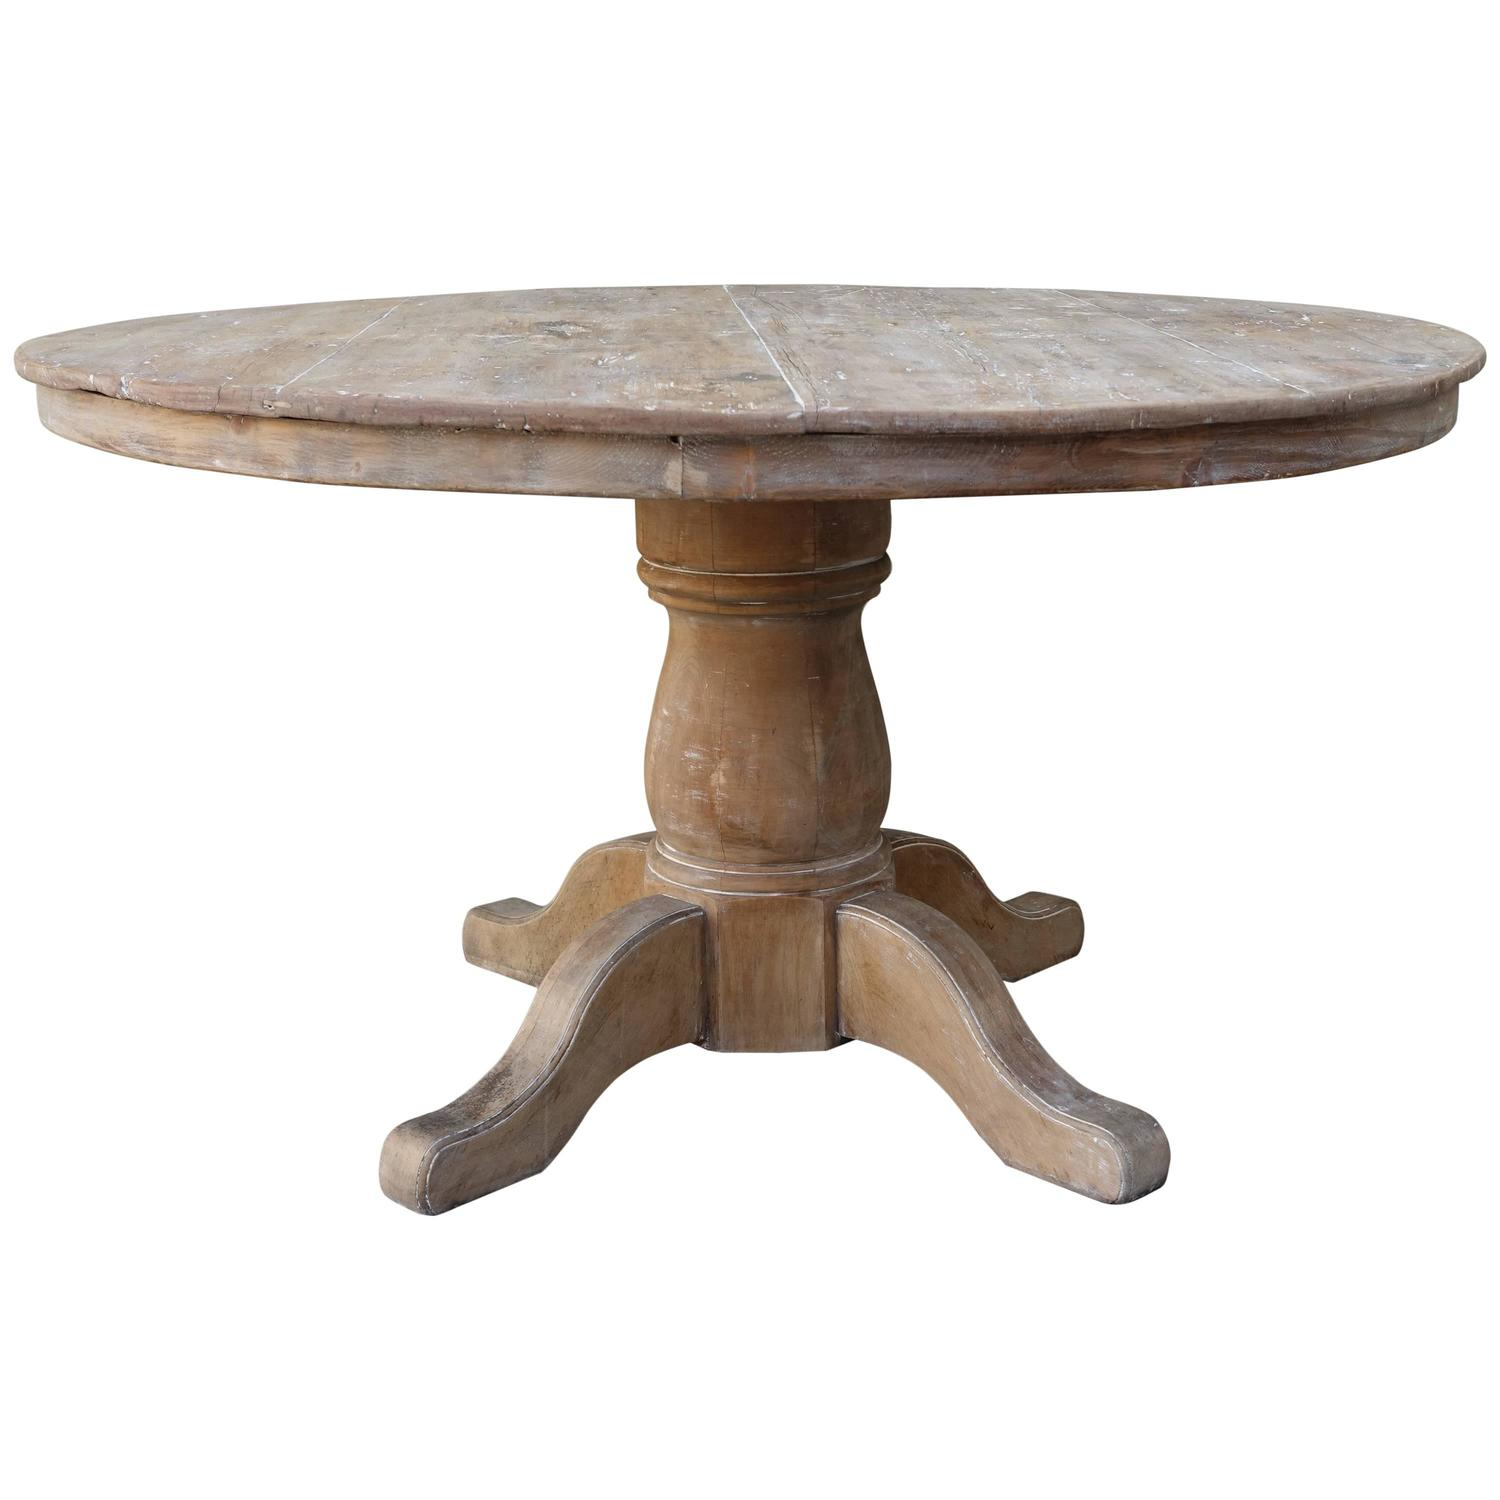 Swedish pine pedestal dining table at 1stdibs for Pedestal dining table